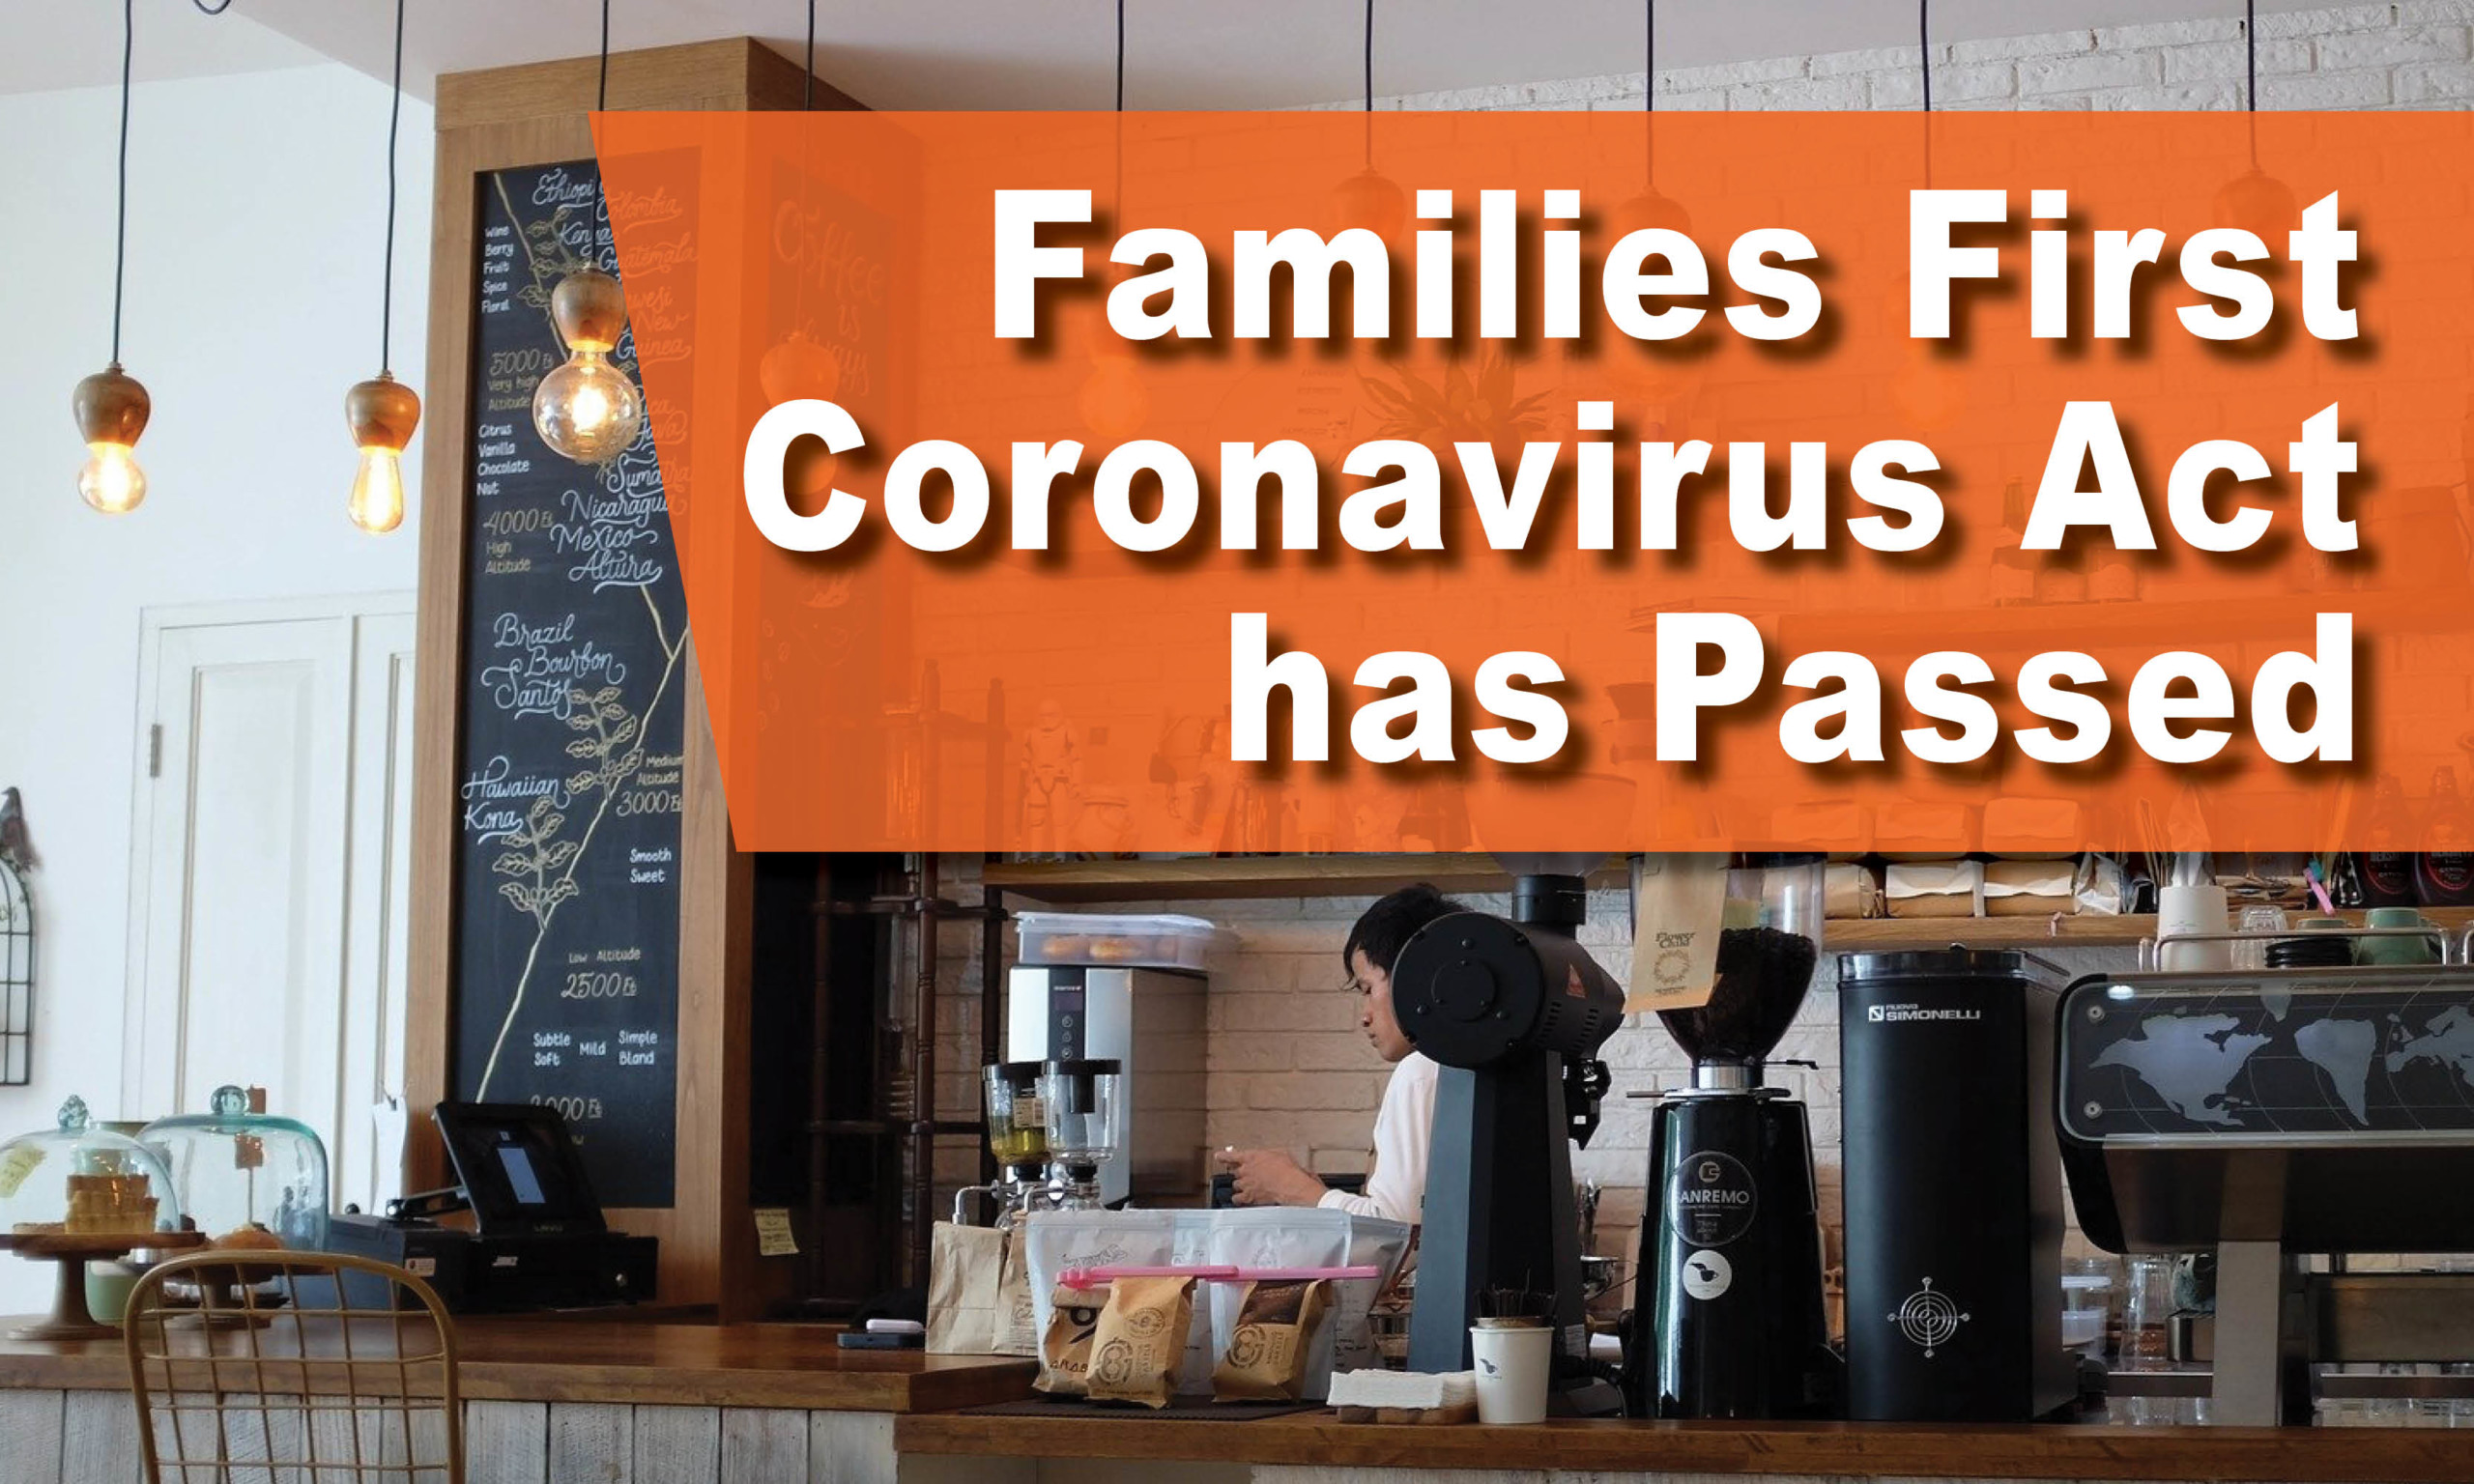 Family First Coronavirus Act Passed